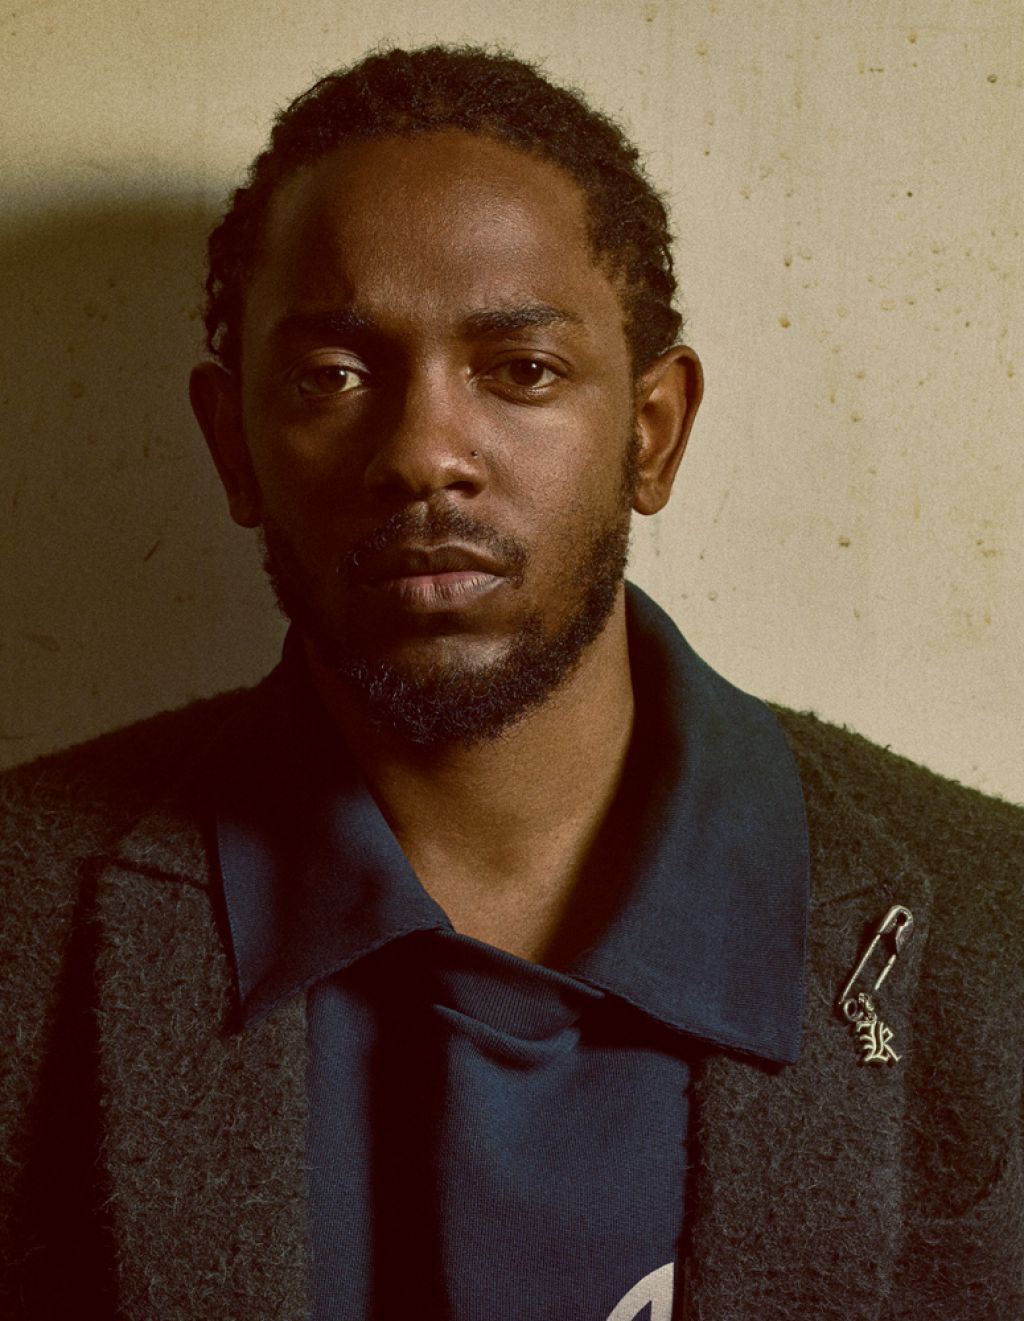 Kendrick Lamar by Dave Chappelle